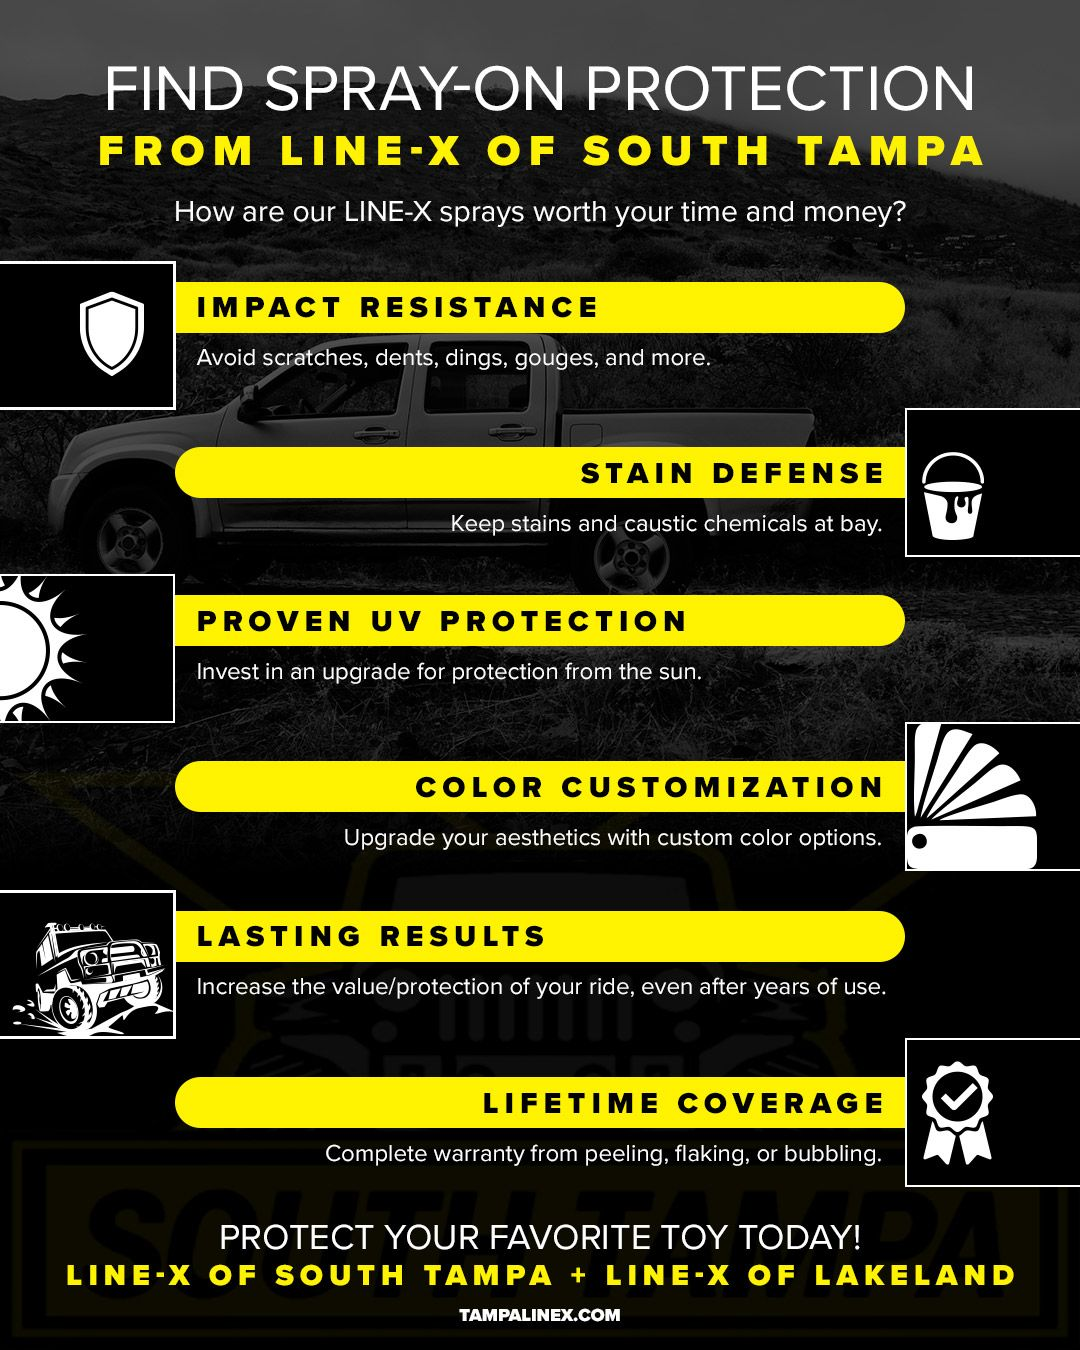 Find Spray-On Protection From LINE-X of South Tampa.jpg